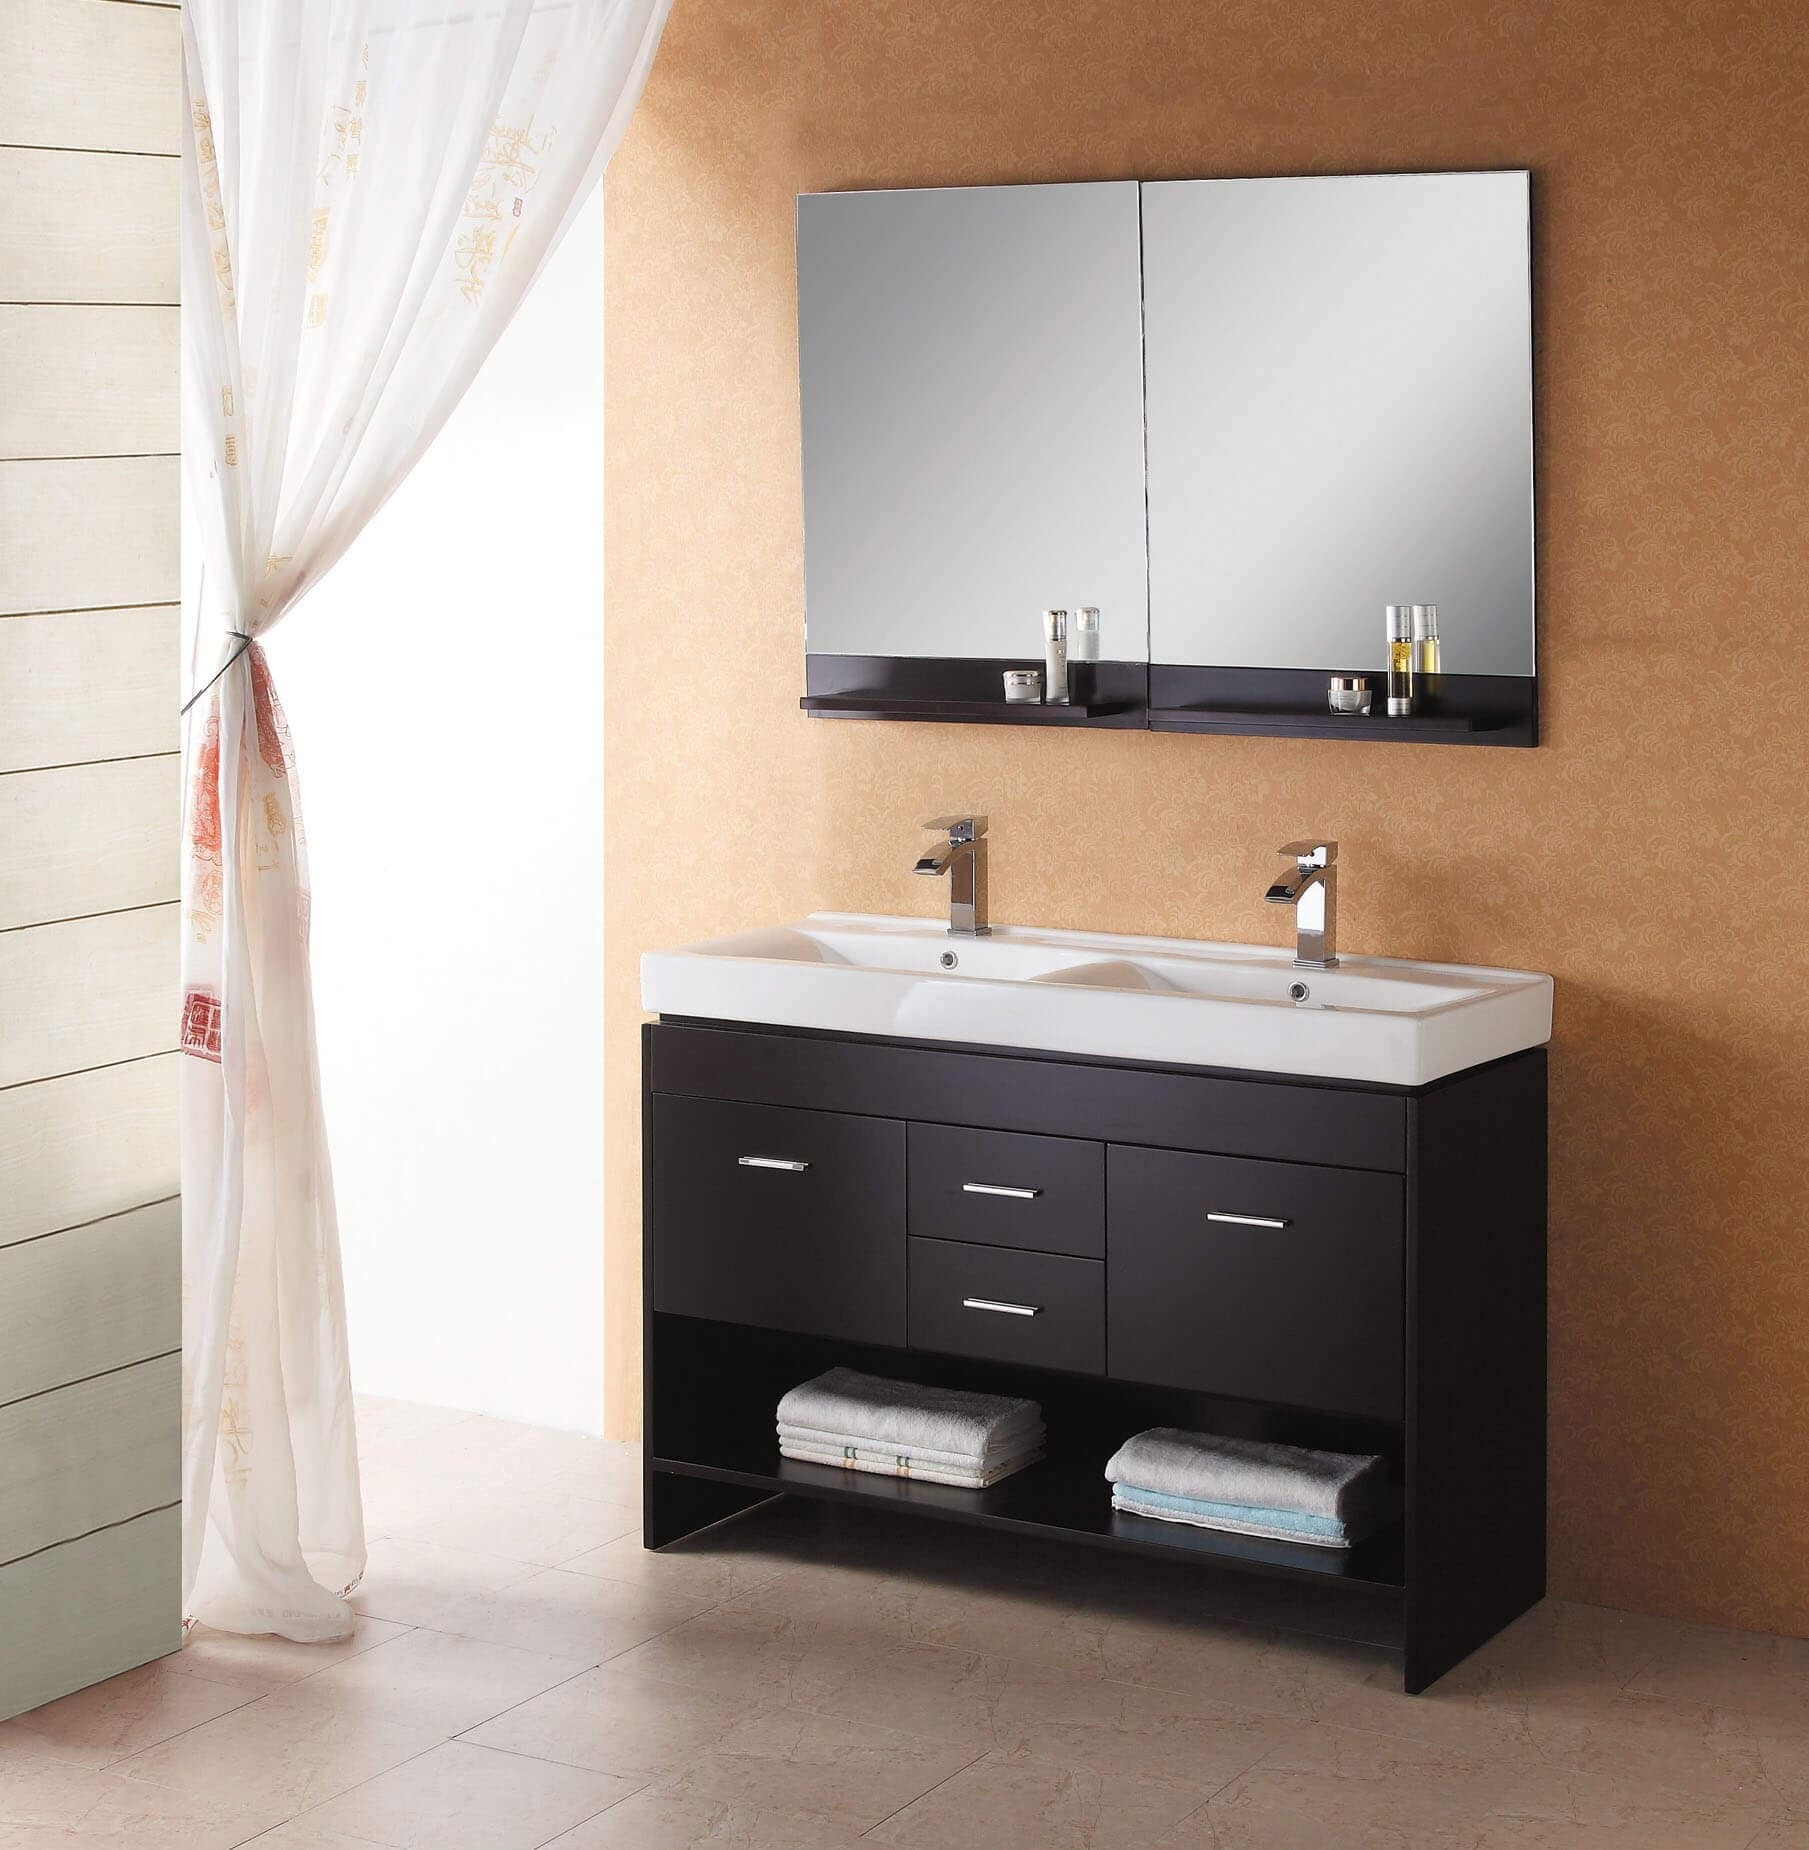 Top Utility Sink Cabinet